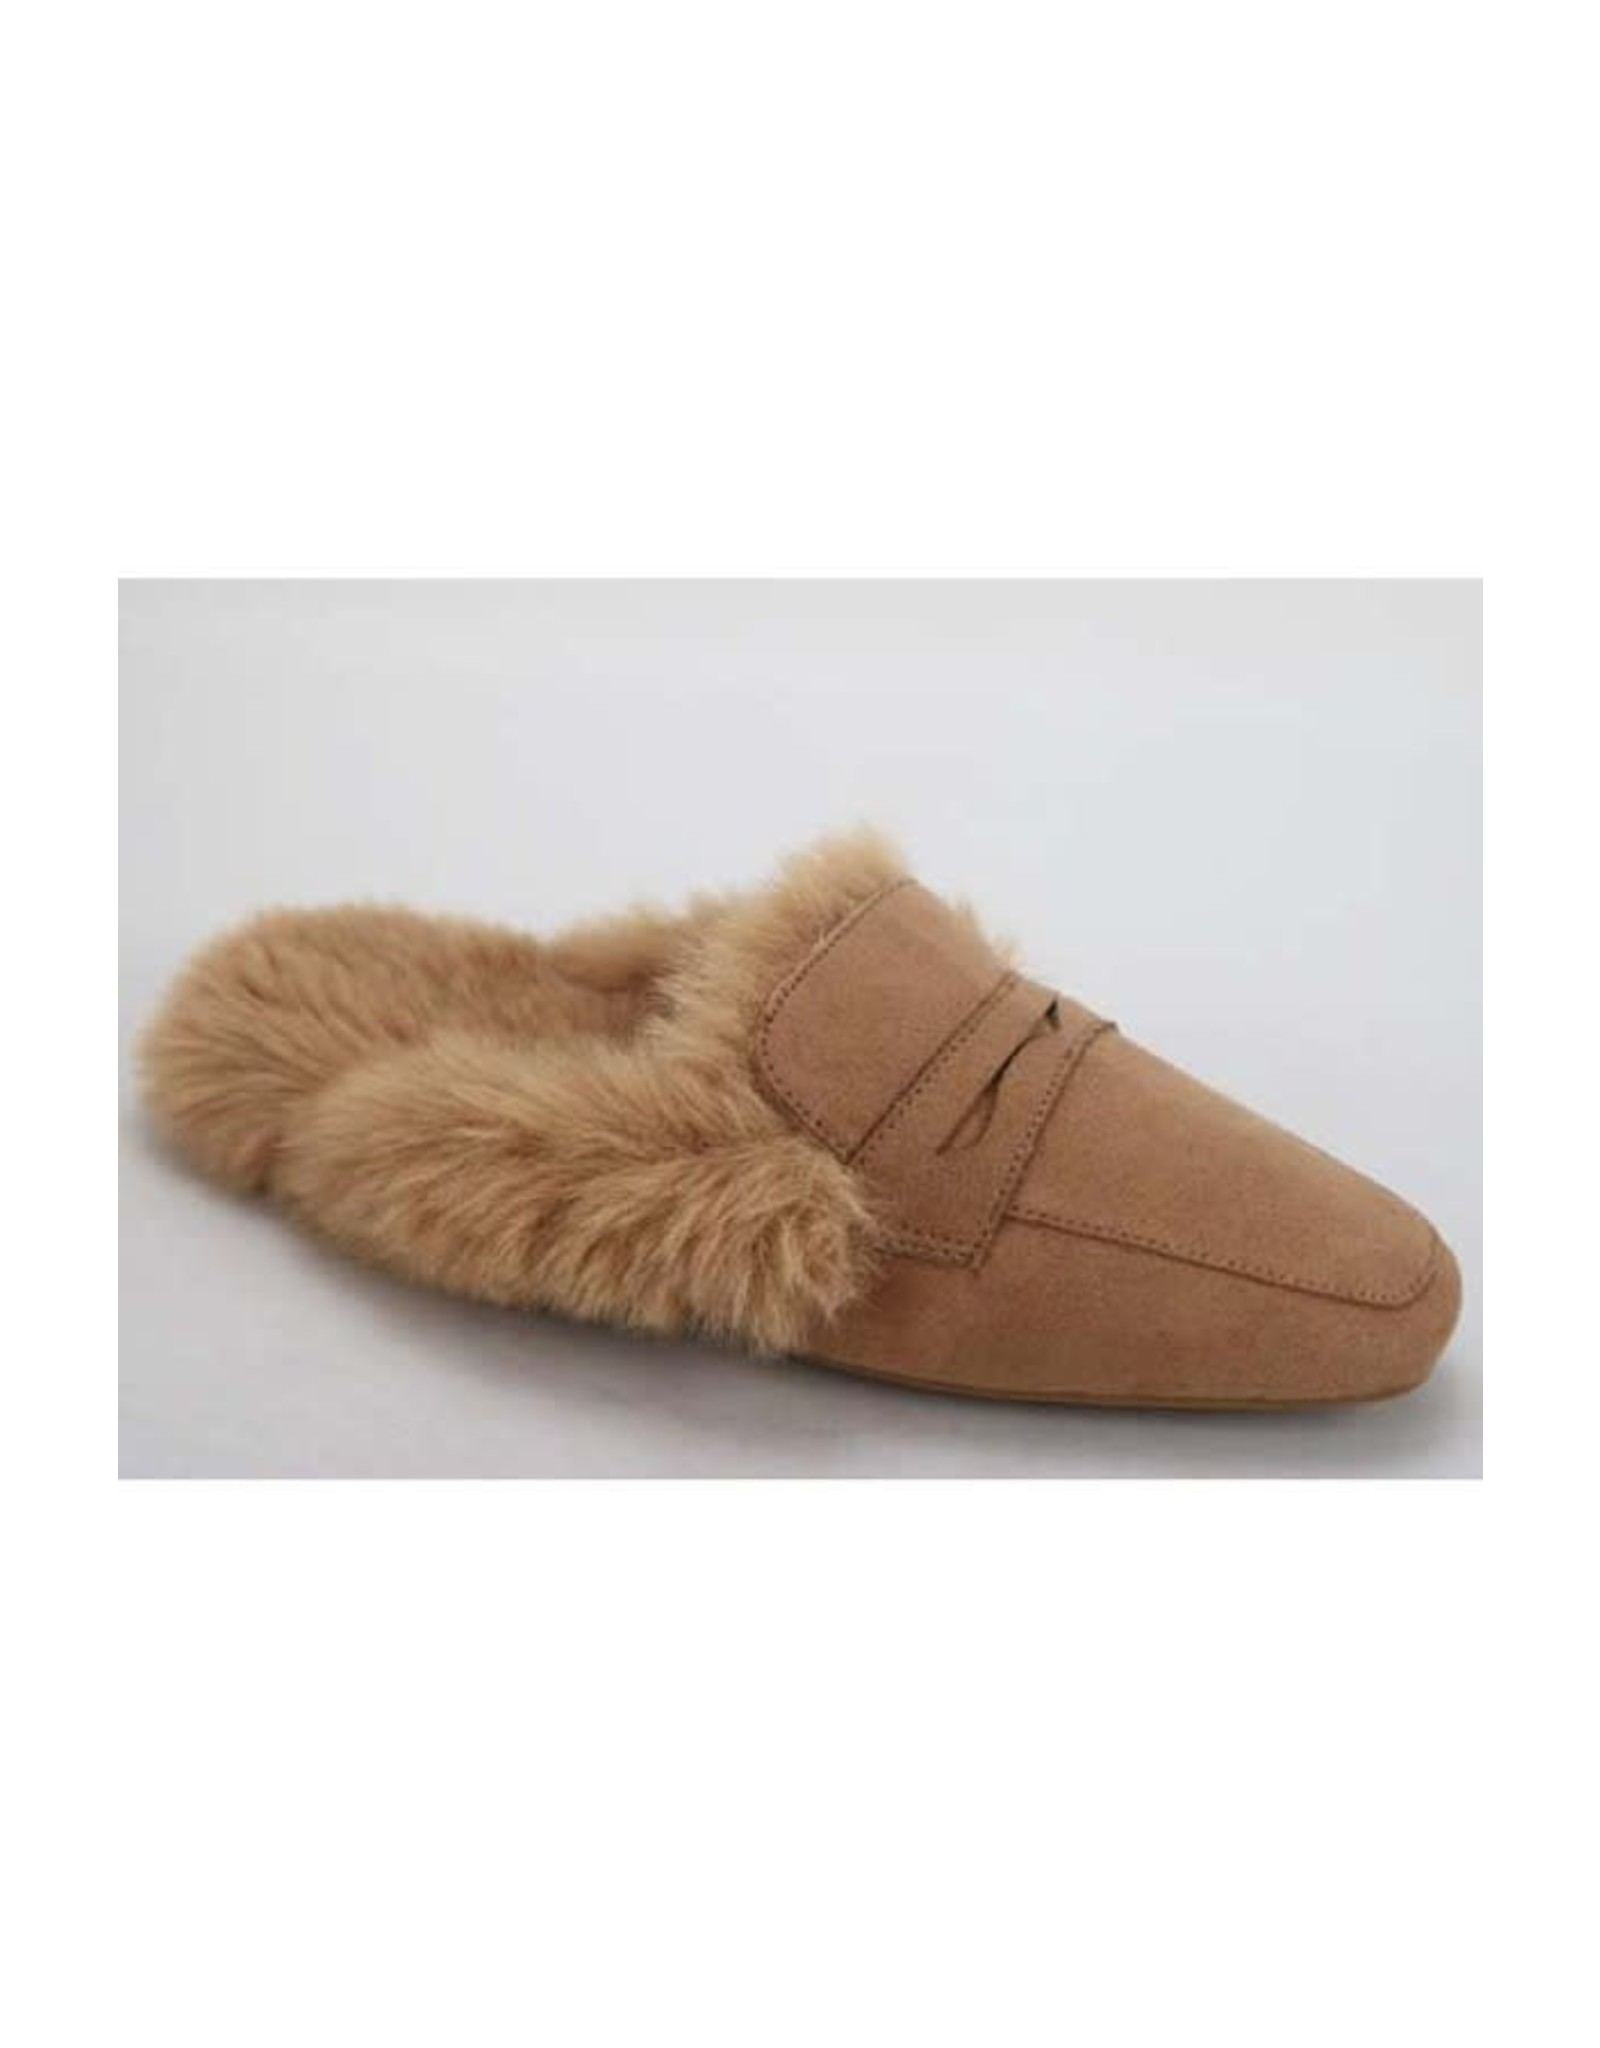 Sweep - Fuzzy mules (camel)